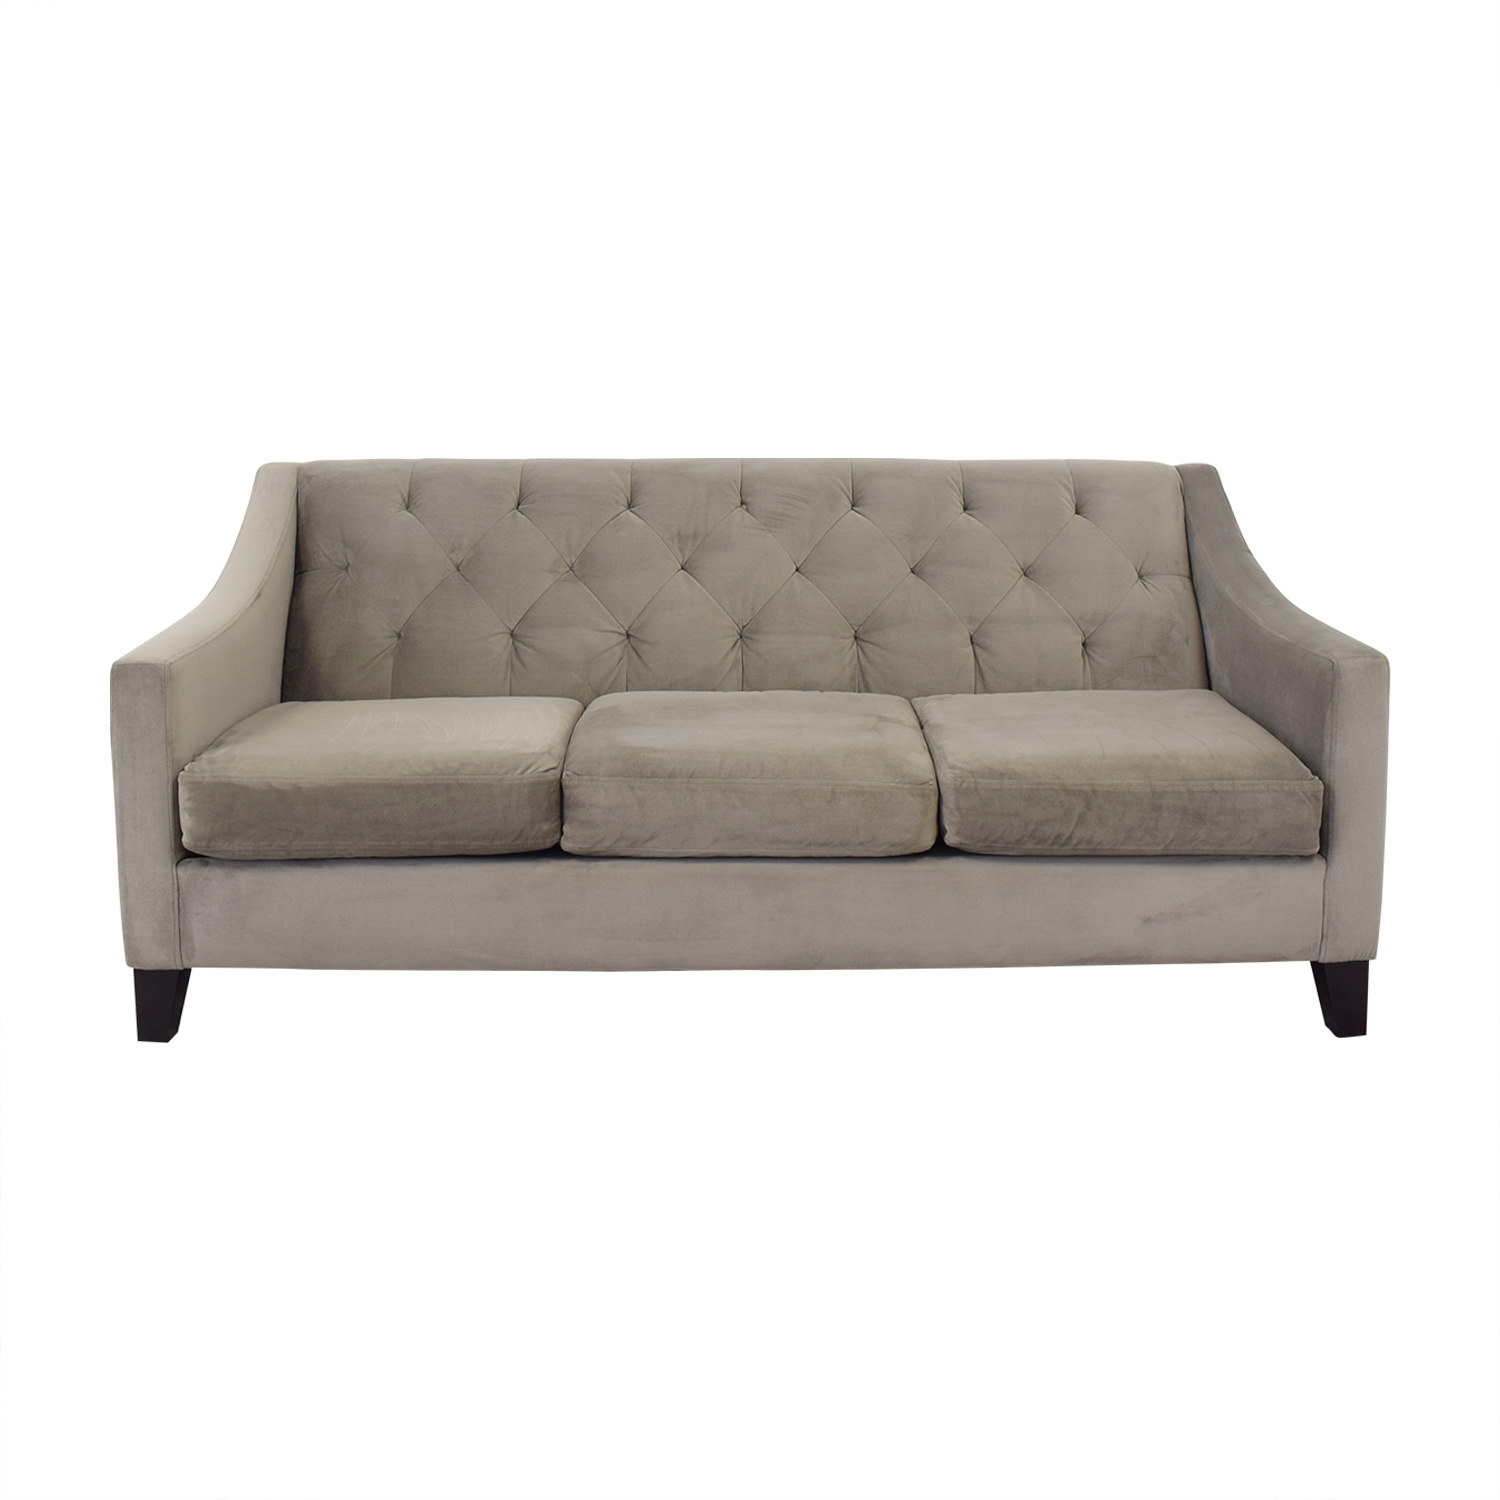 shop Max Home Better By Design Tufted Velvet Sofa Max Home